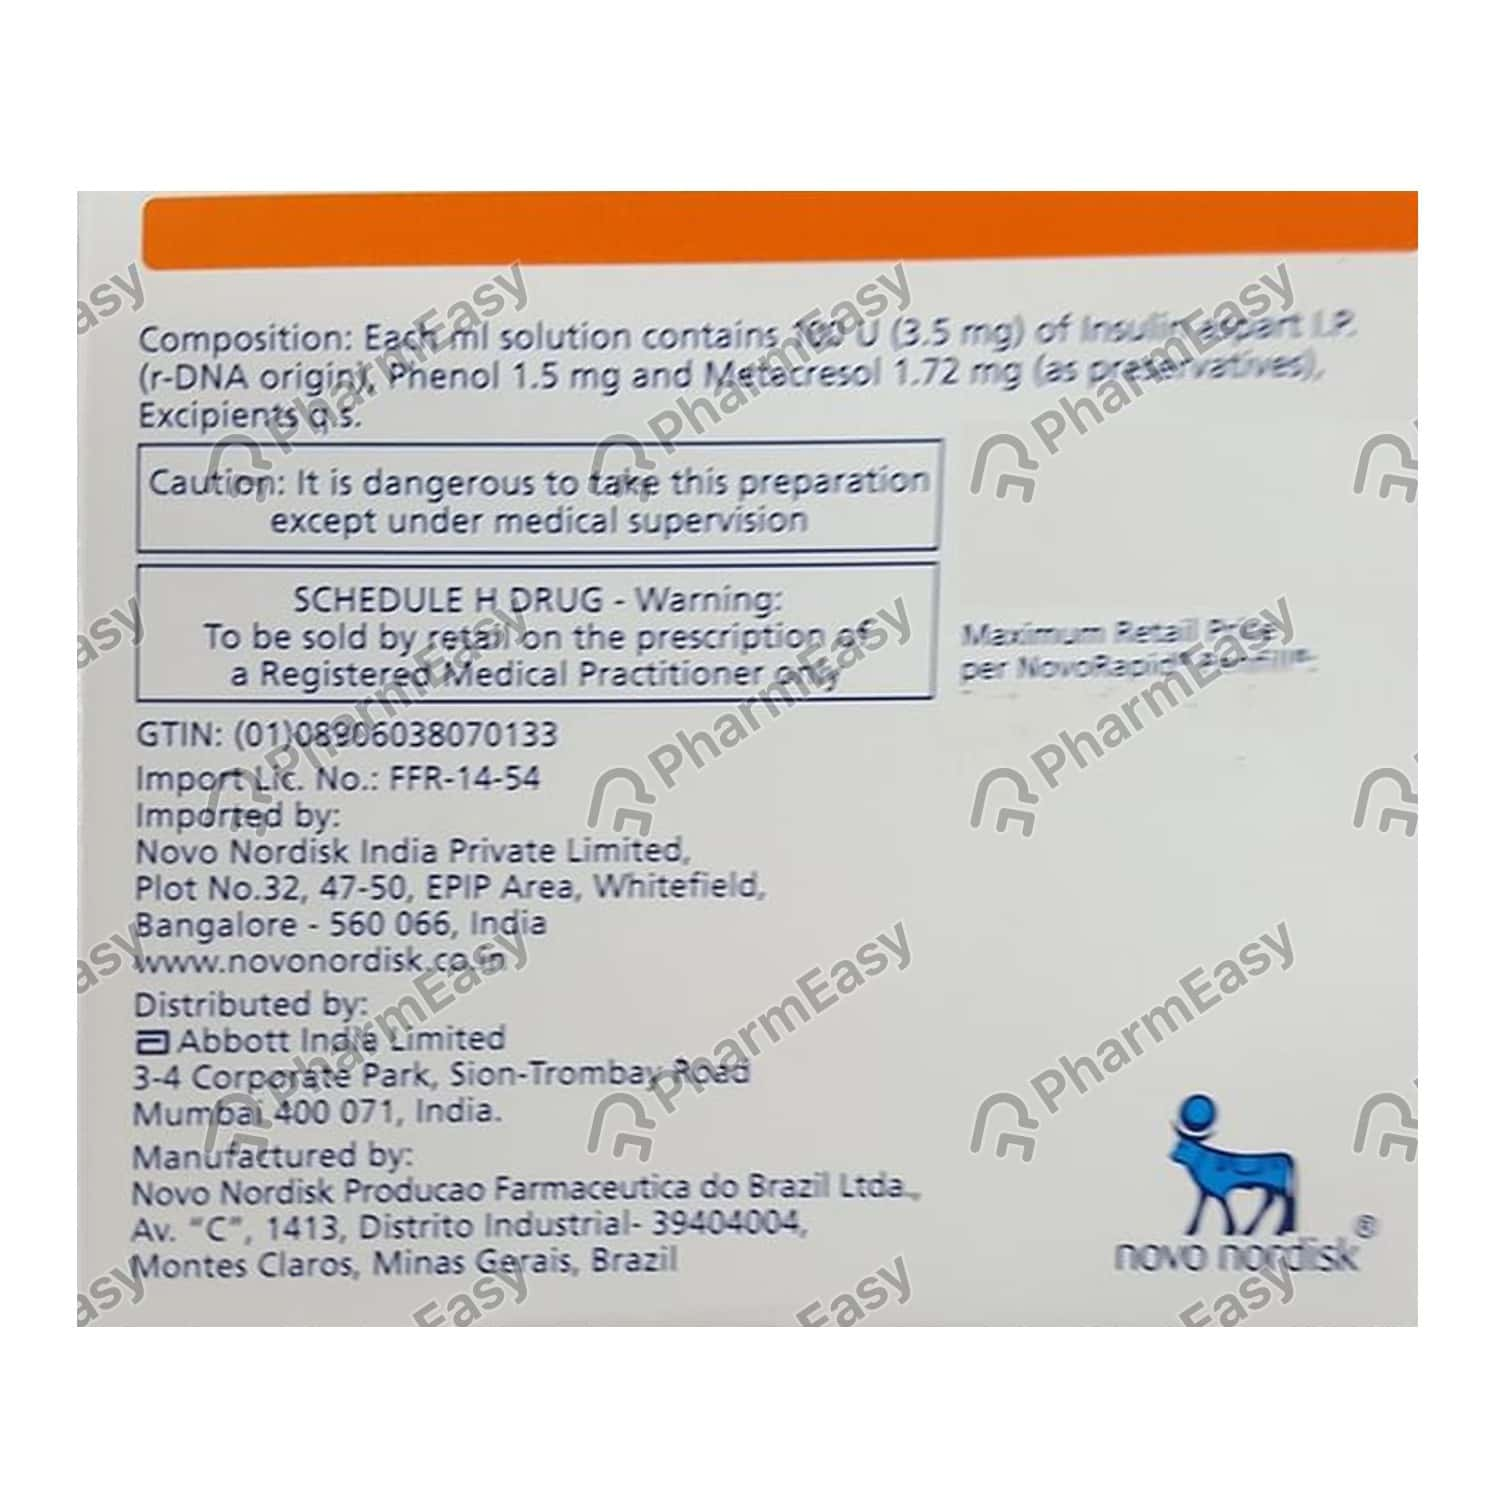 Novorapid Penfill Cartridge Of 3ml Solution For Injection